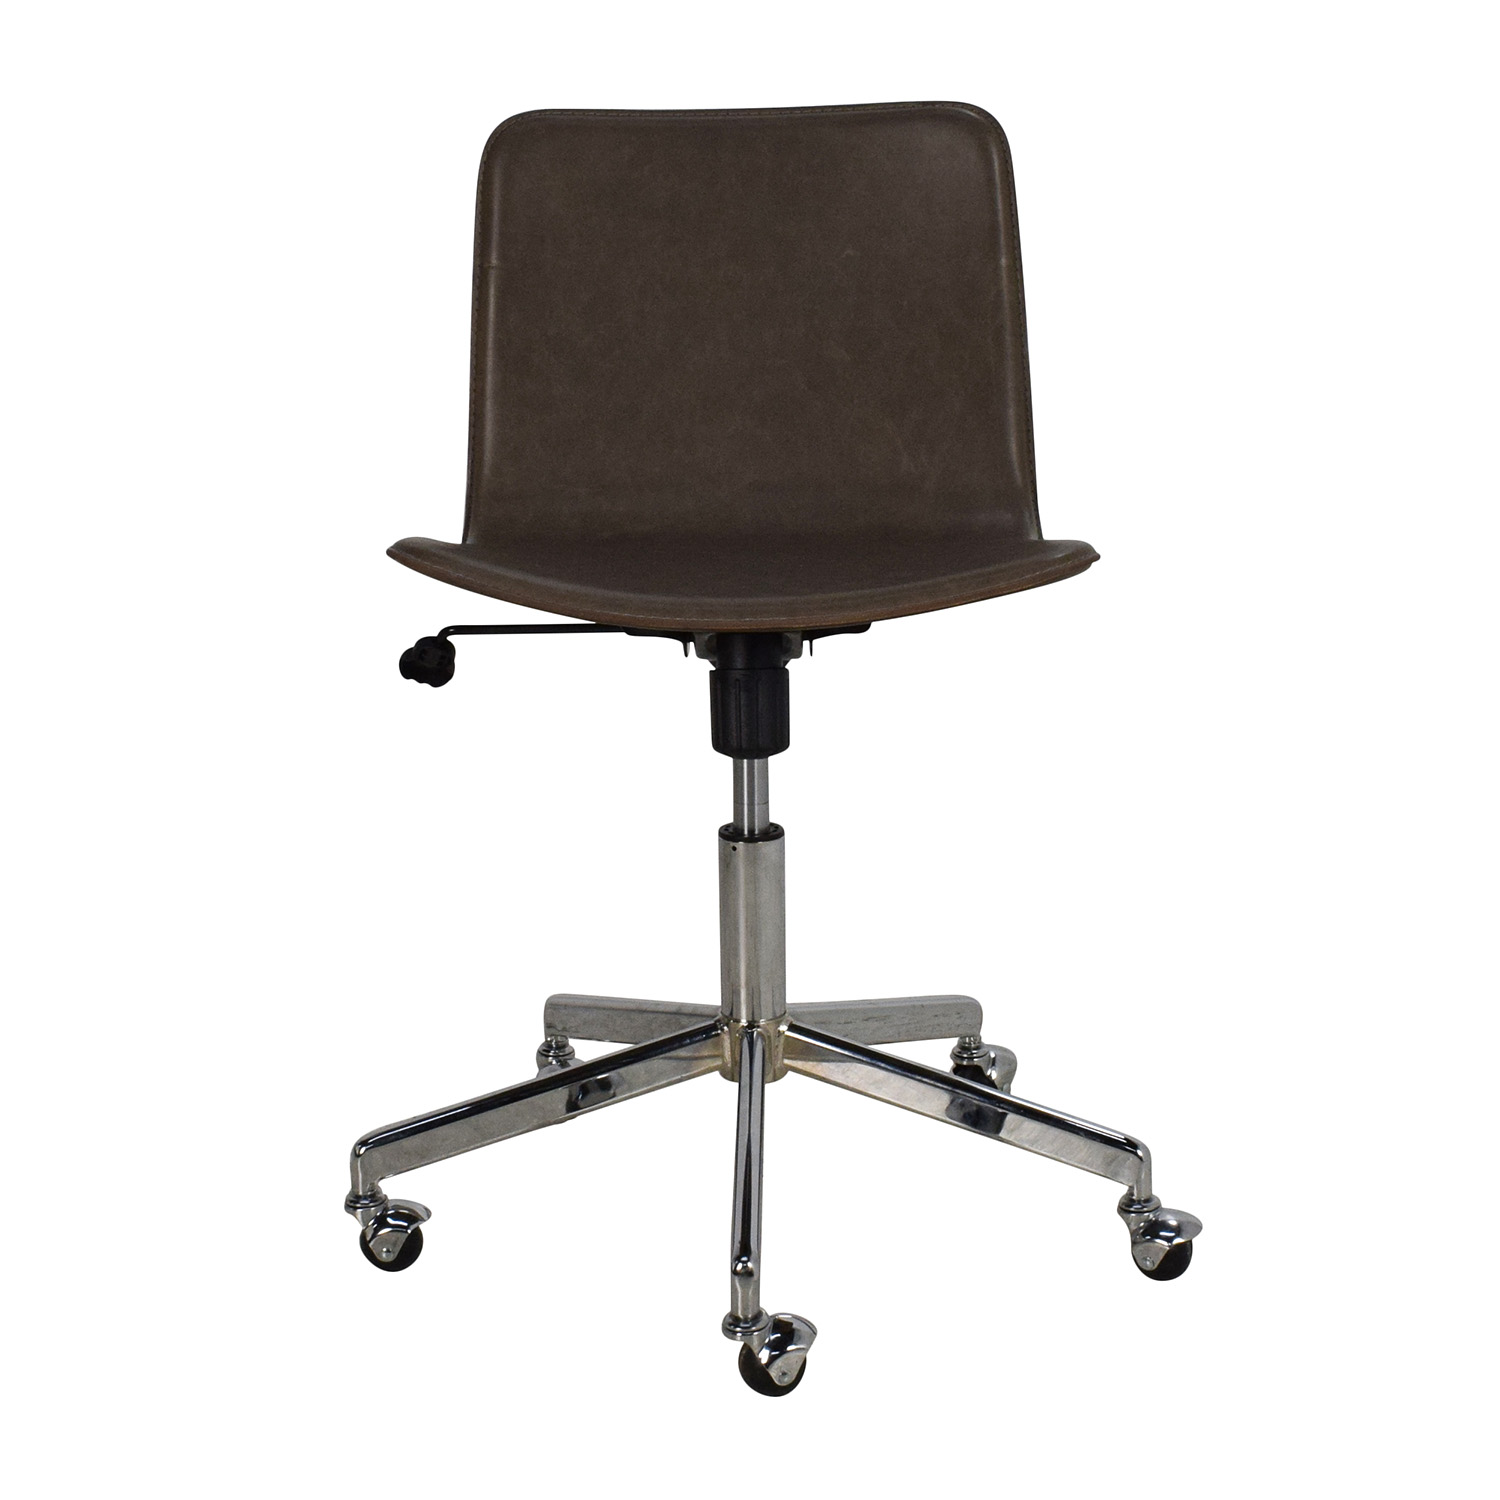 CB2 CB2 Stratum Office Chair dimensions